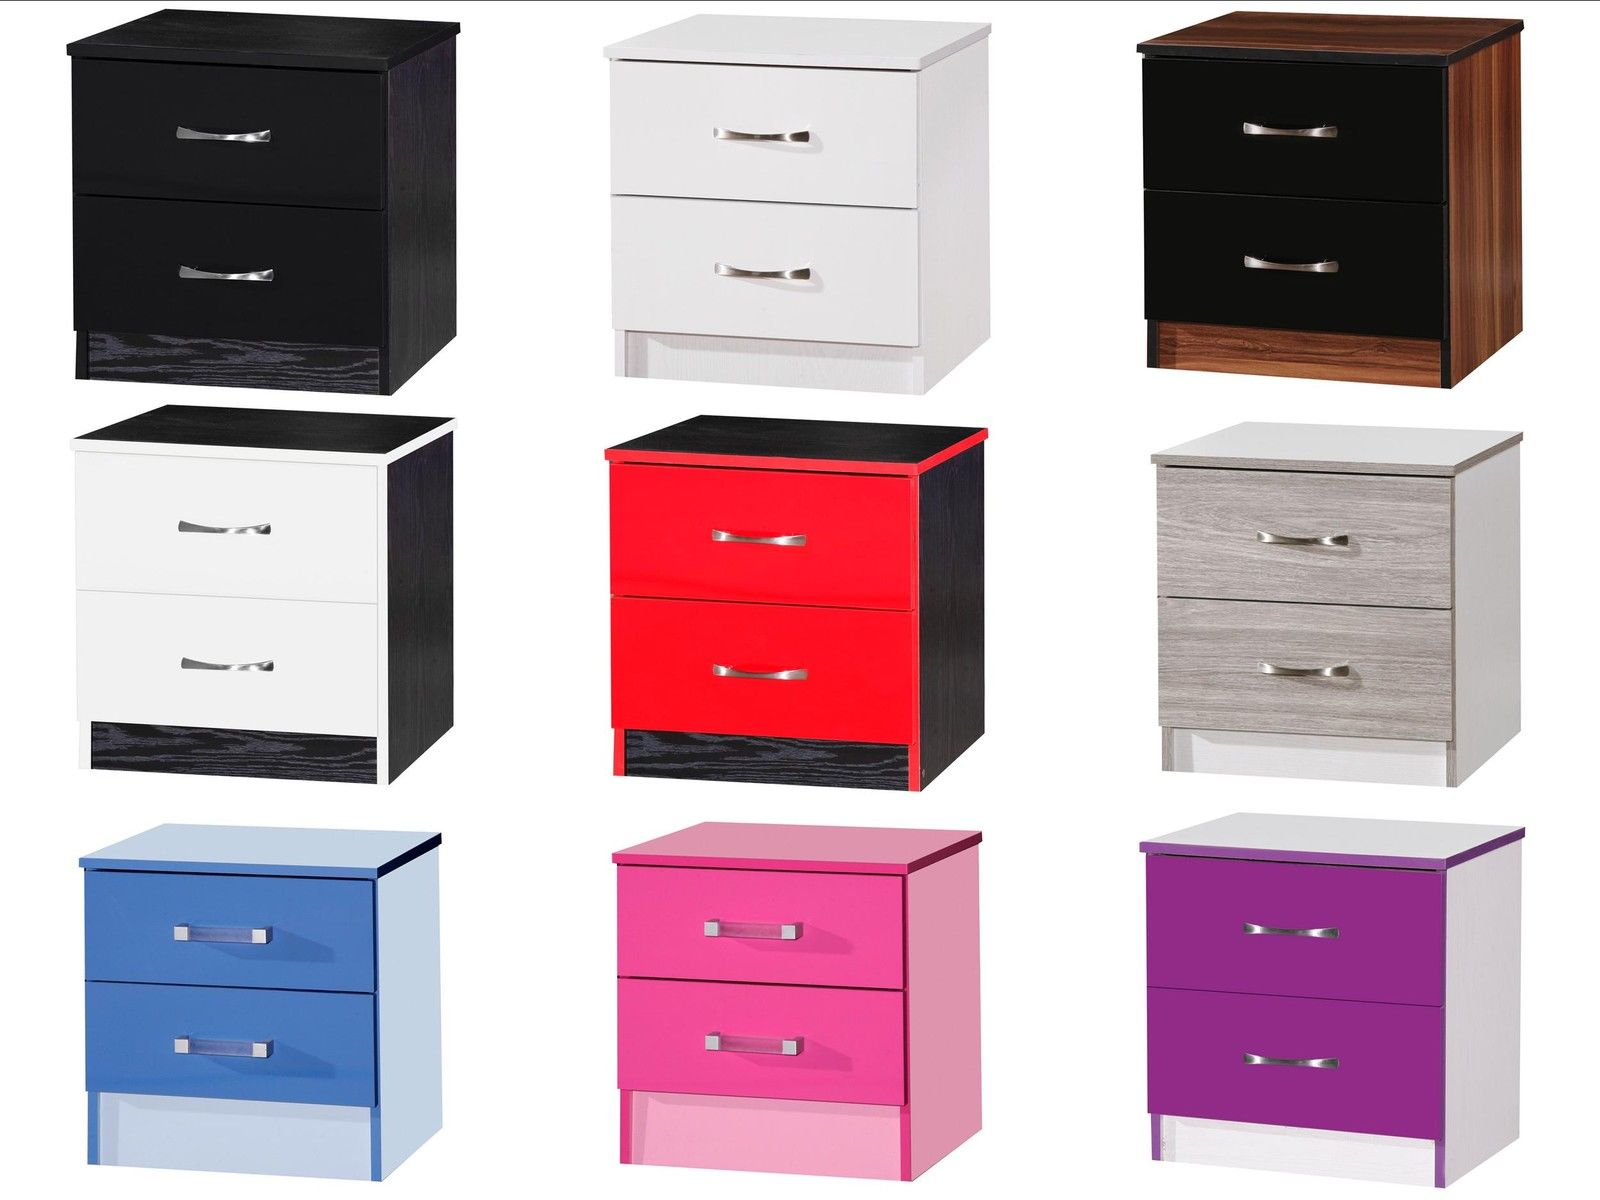 Pair Of High Gloss Bedside Cabinets With 2 Drawers Marina Bedroom Furniture Ebay